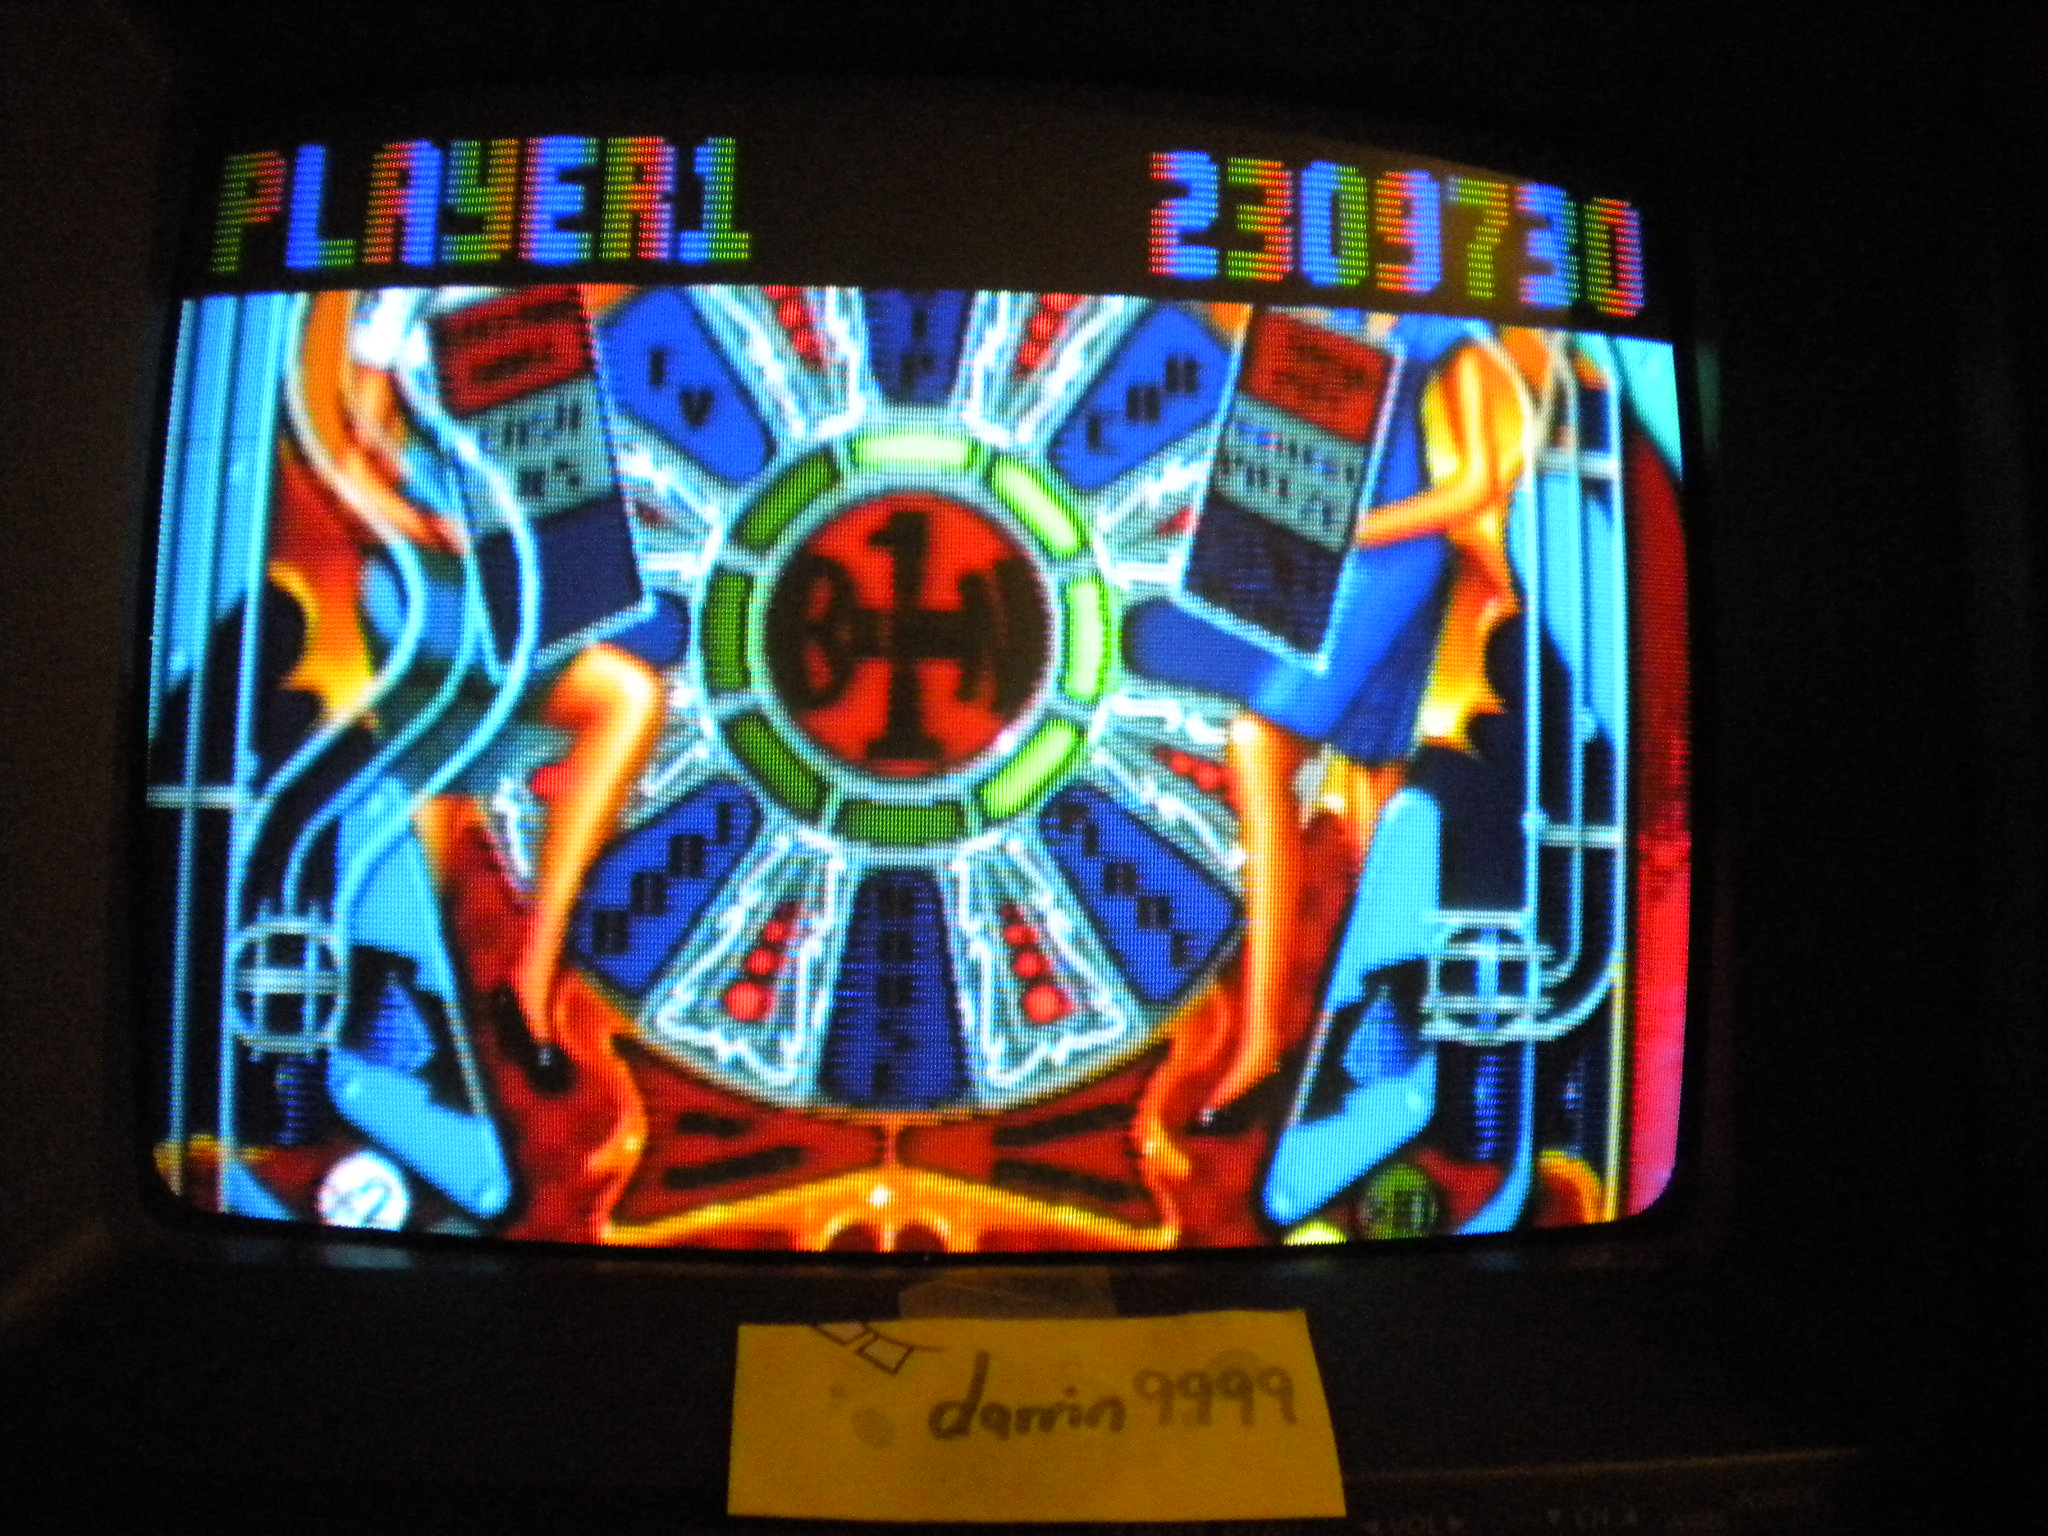 darrin9999: Pinball Fantasies: Billion Dollar (Atari Jaguar) 2,309,730 points on 2016-11-26 17:09:00